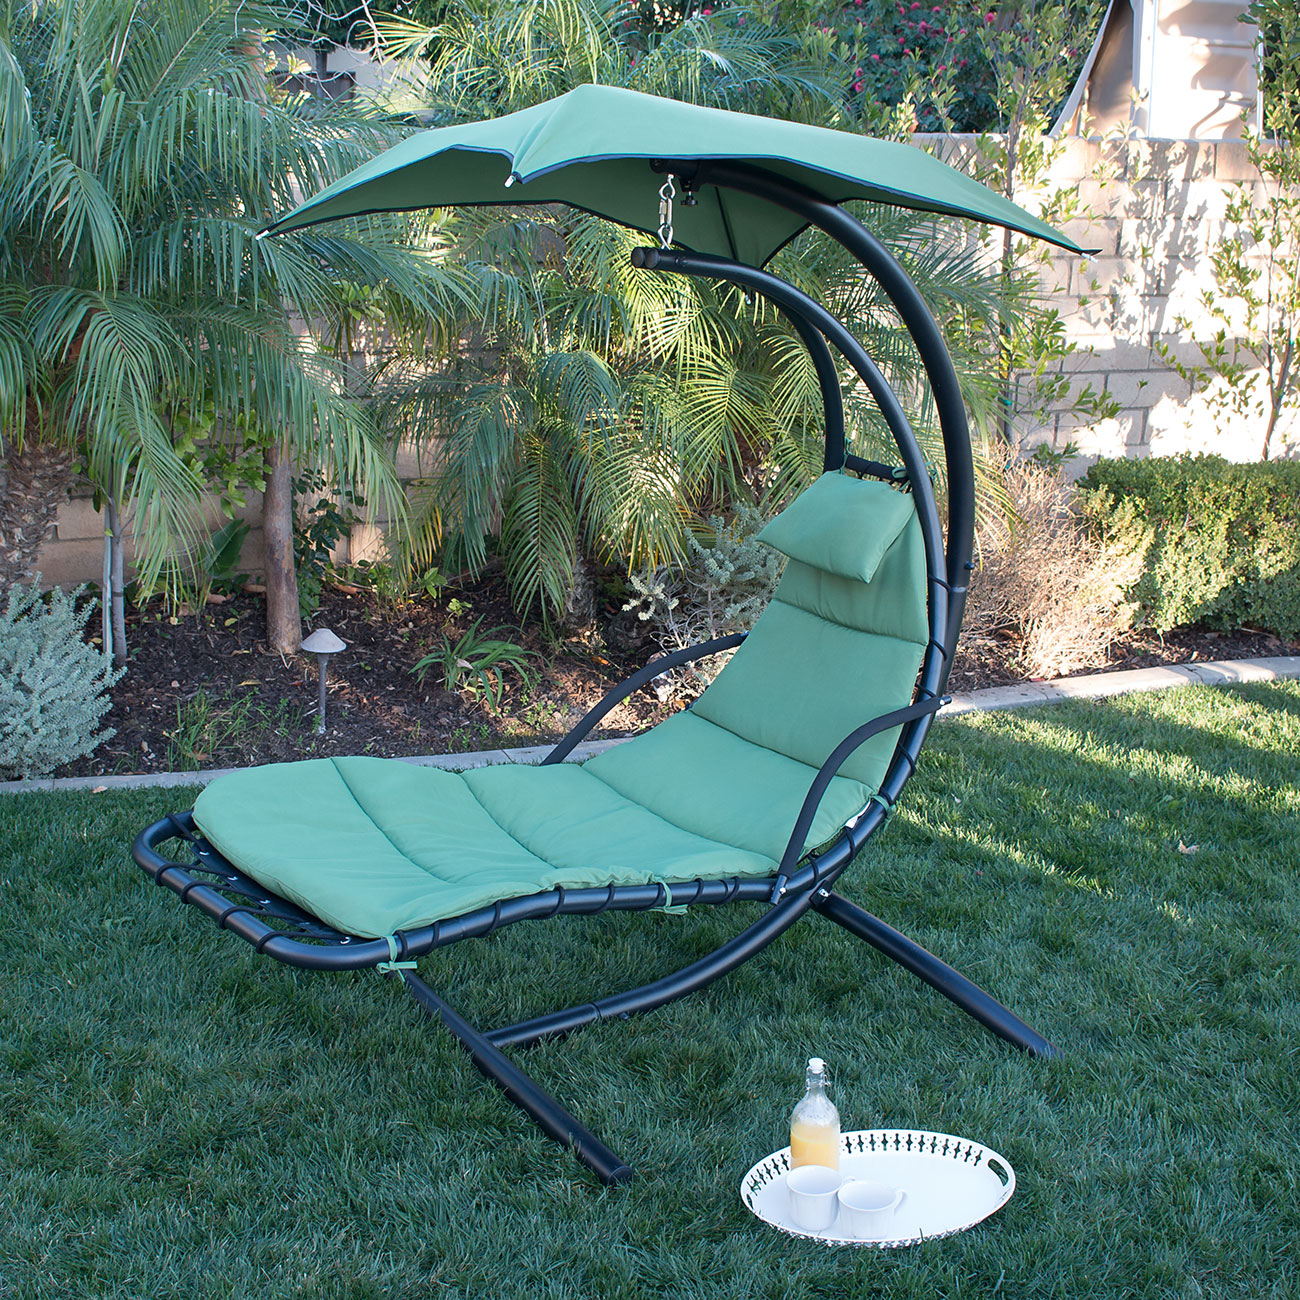 Green Hanging Swing Hammock Canopy Chaise Lounger Chair